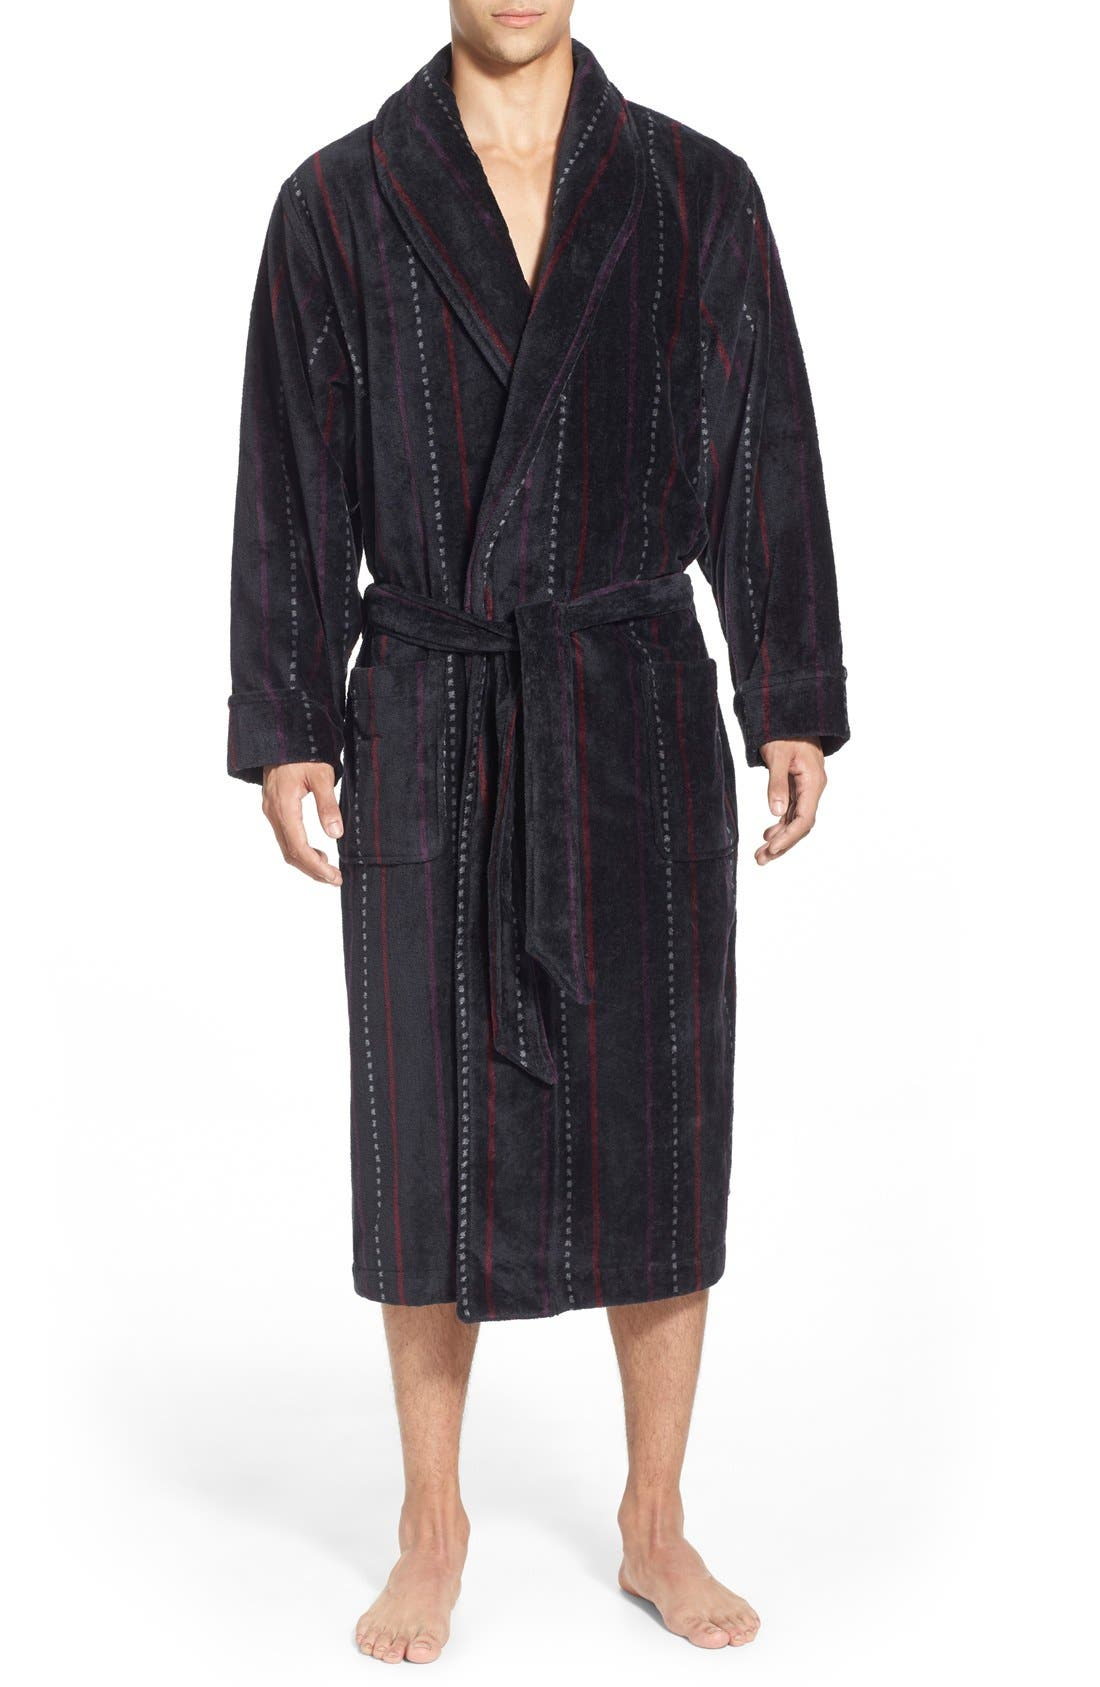 Alternate Image 1 Selected - Nordstrom Men's Shop Terry Shawl Robe